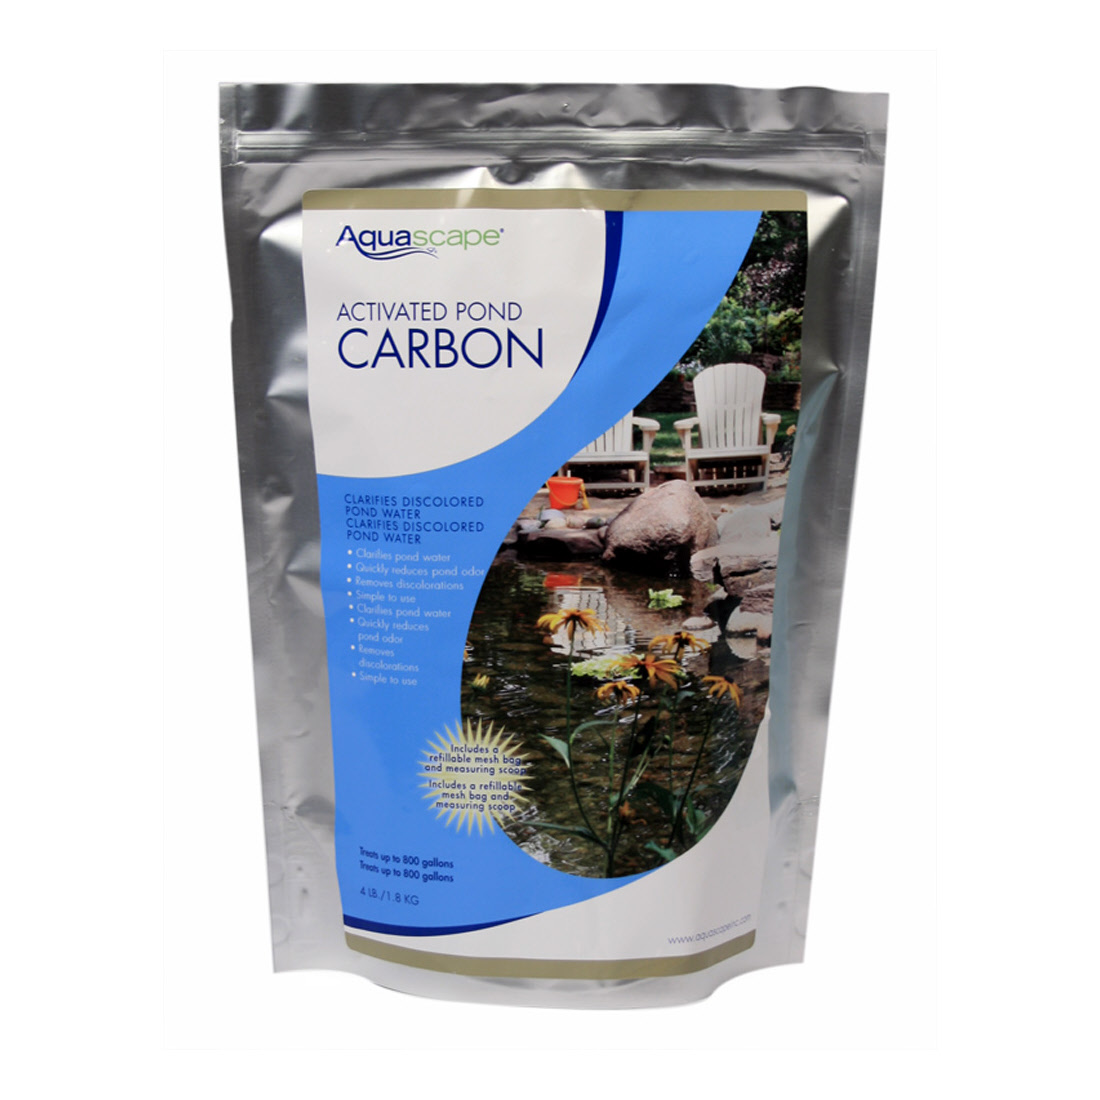 Activated pond carbon by aquascape for Pond carbon filter